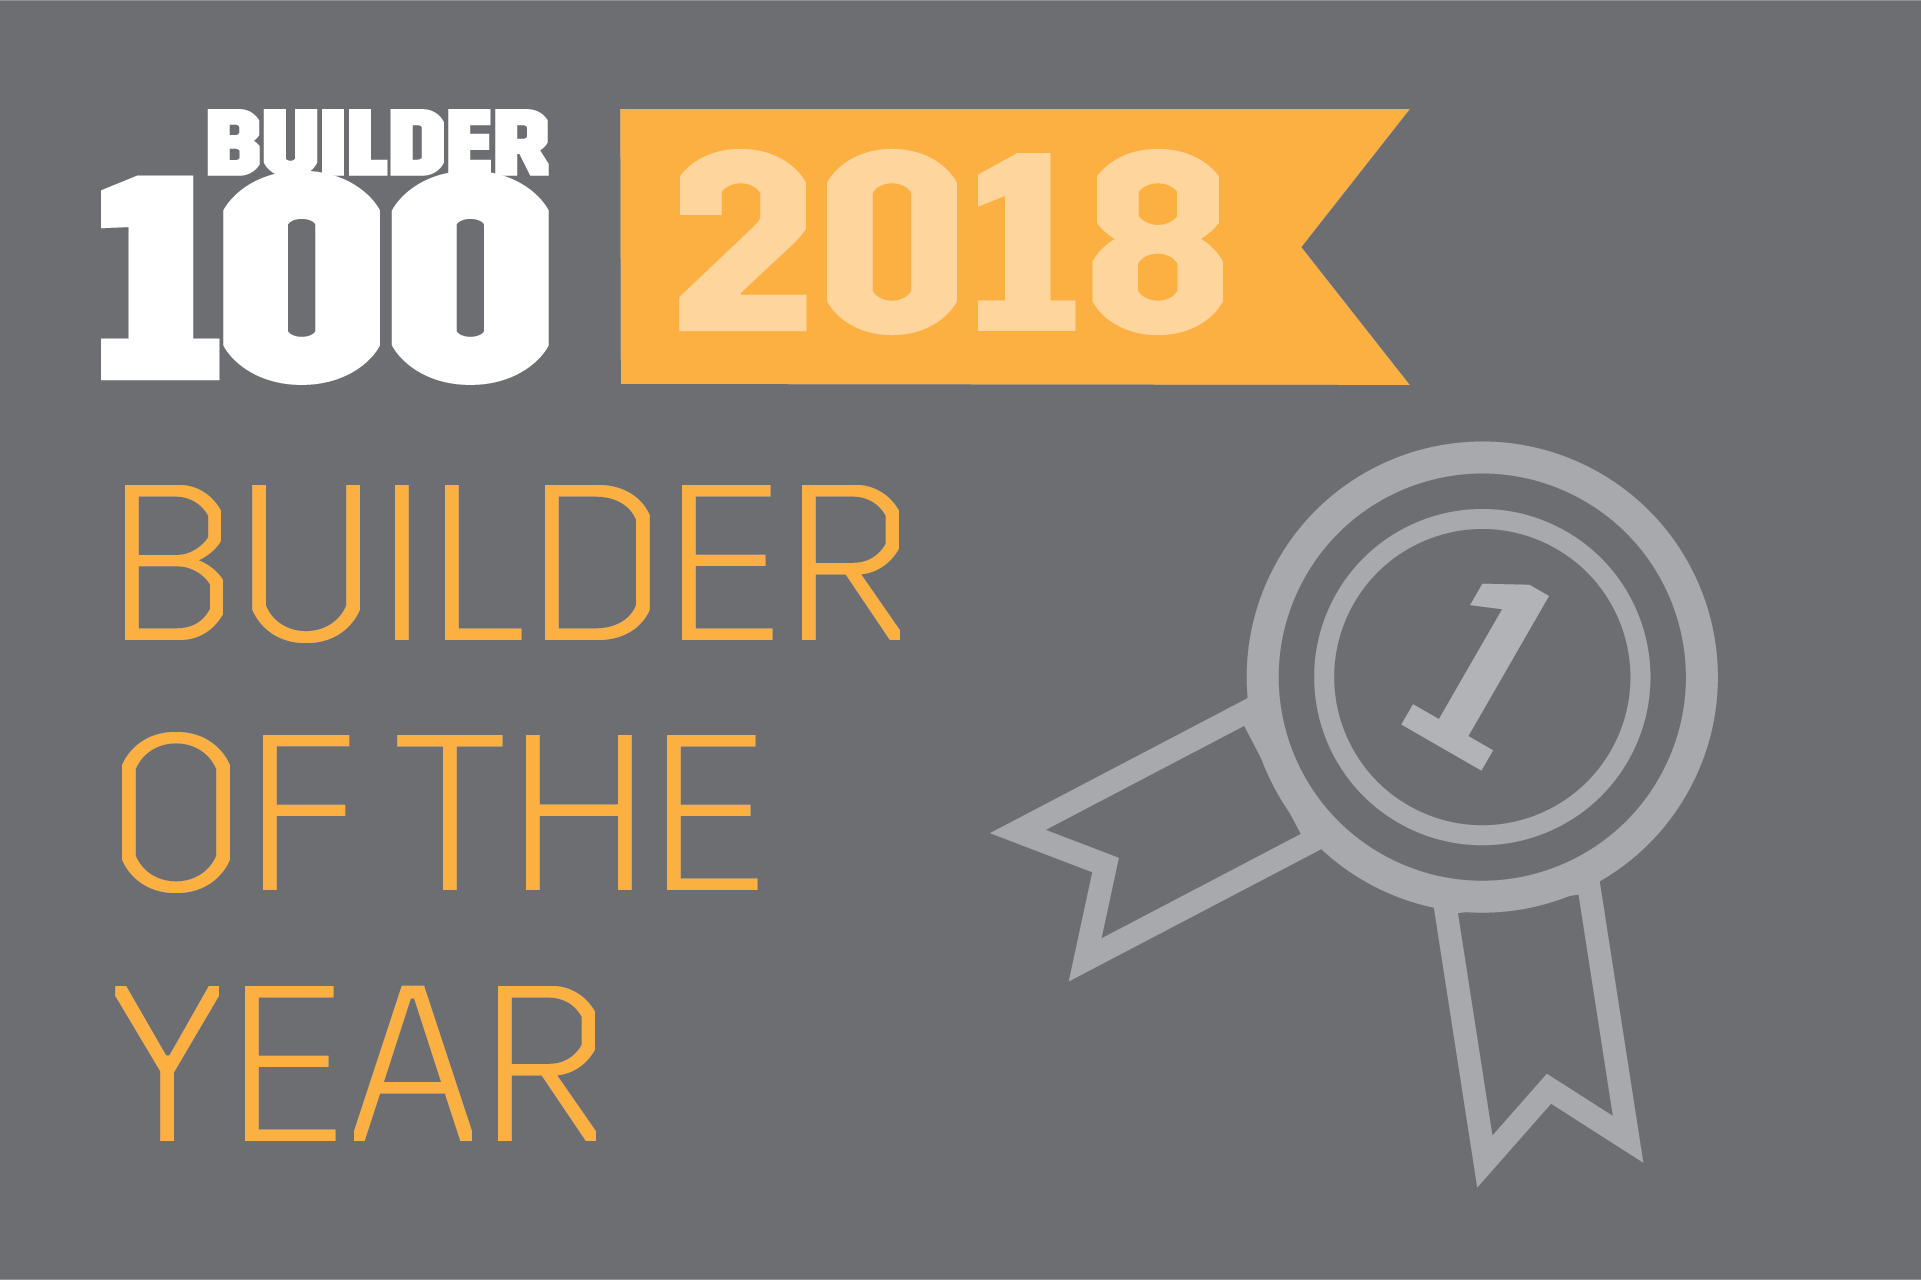 builder honors lennar as 2018 builder of the year builder magazine